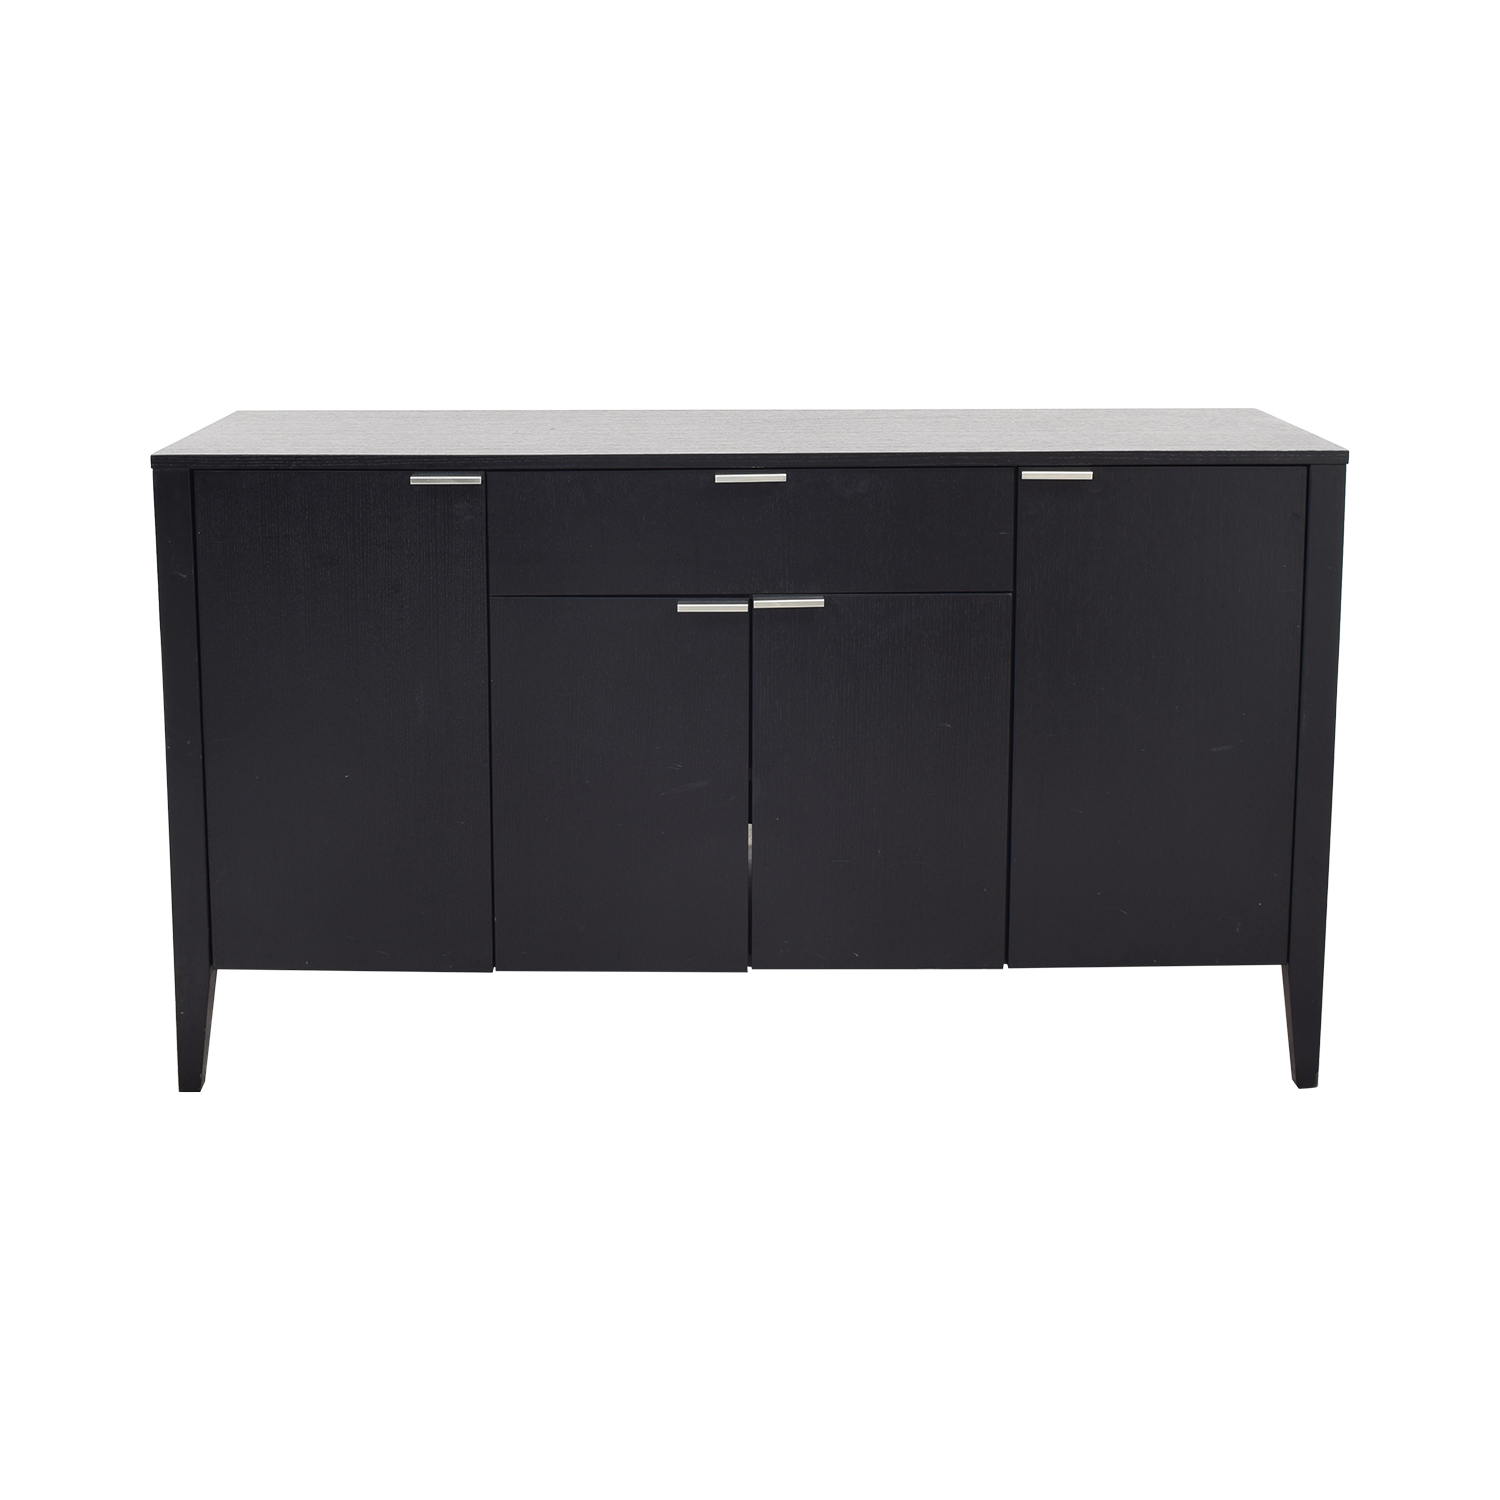 Crate & Barrel Crate & Barrel Sideboard for sale